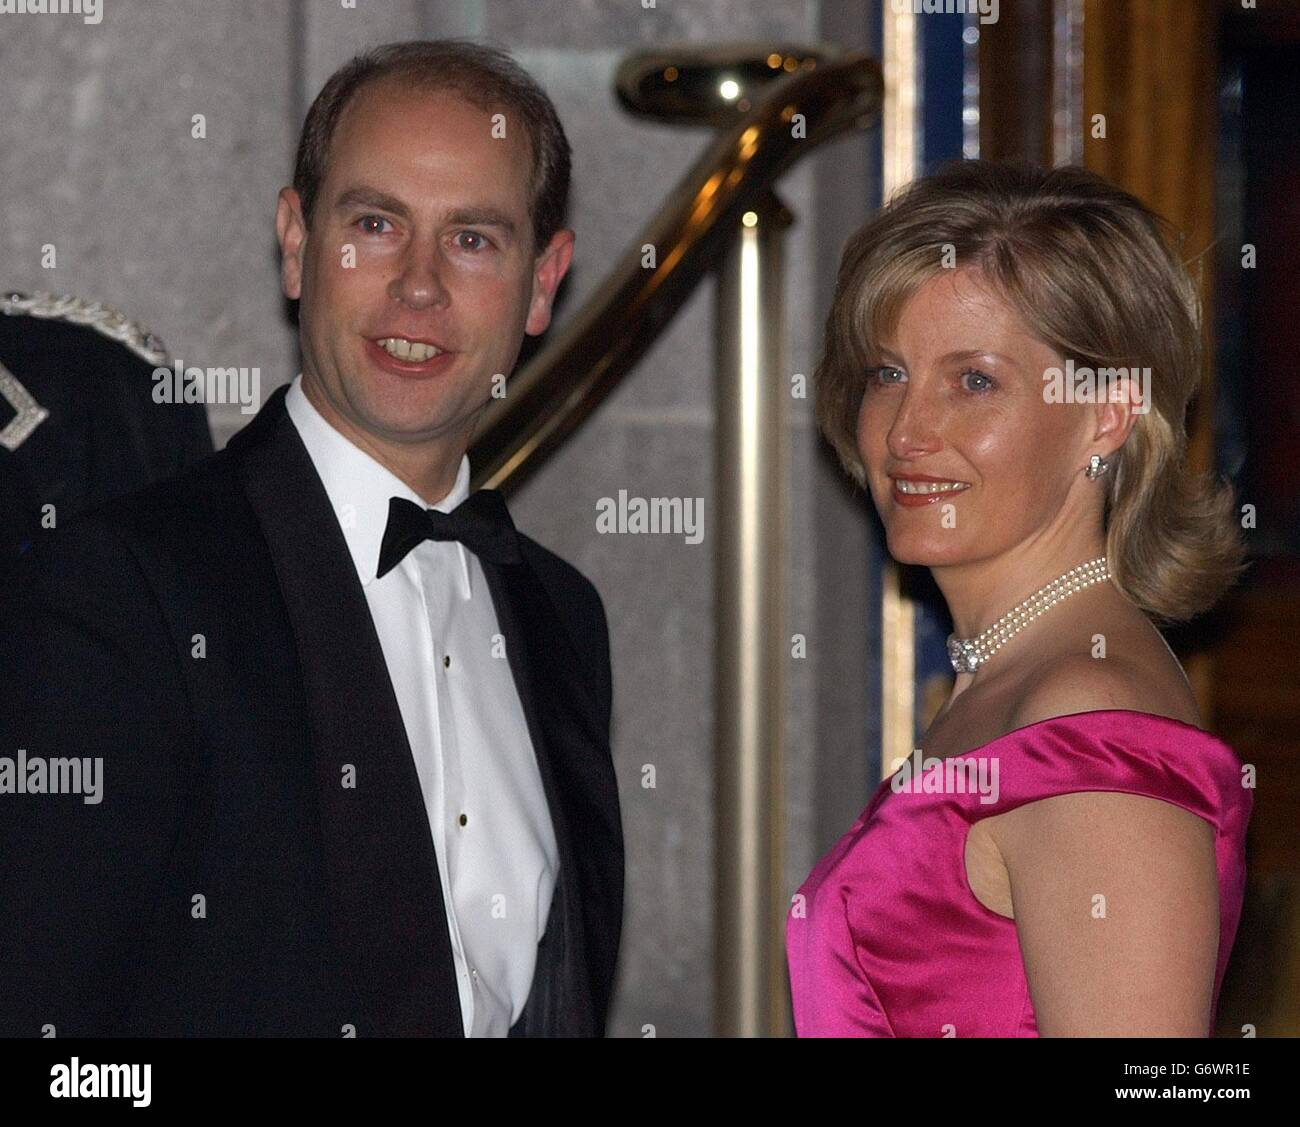 The Earl and Countess of Wessex arrives at the Ritz Hotel - Stock Image